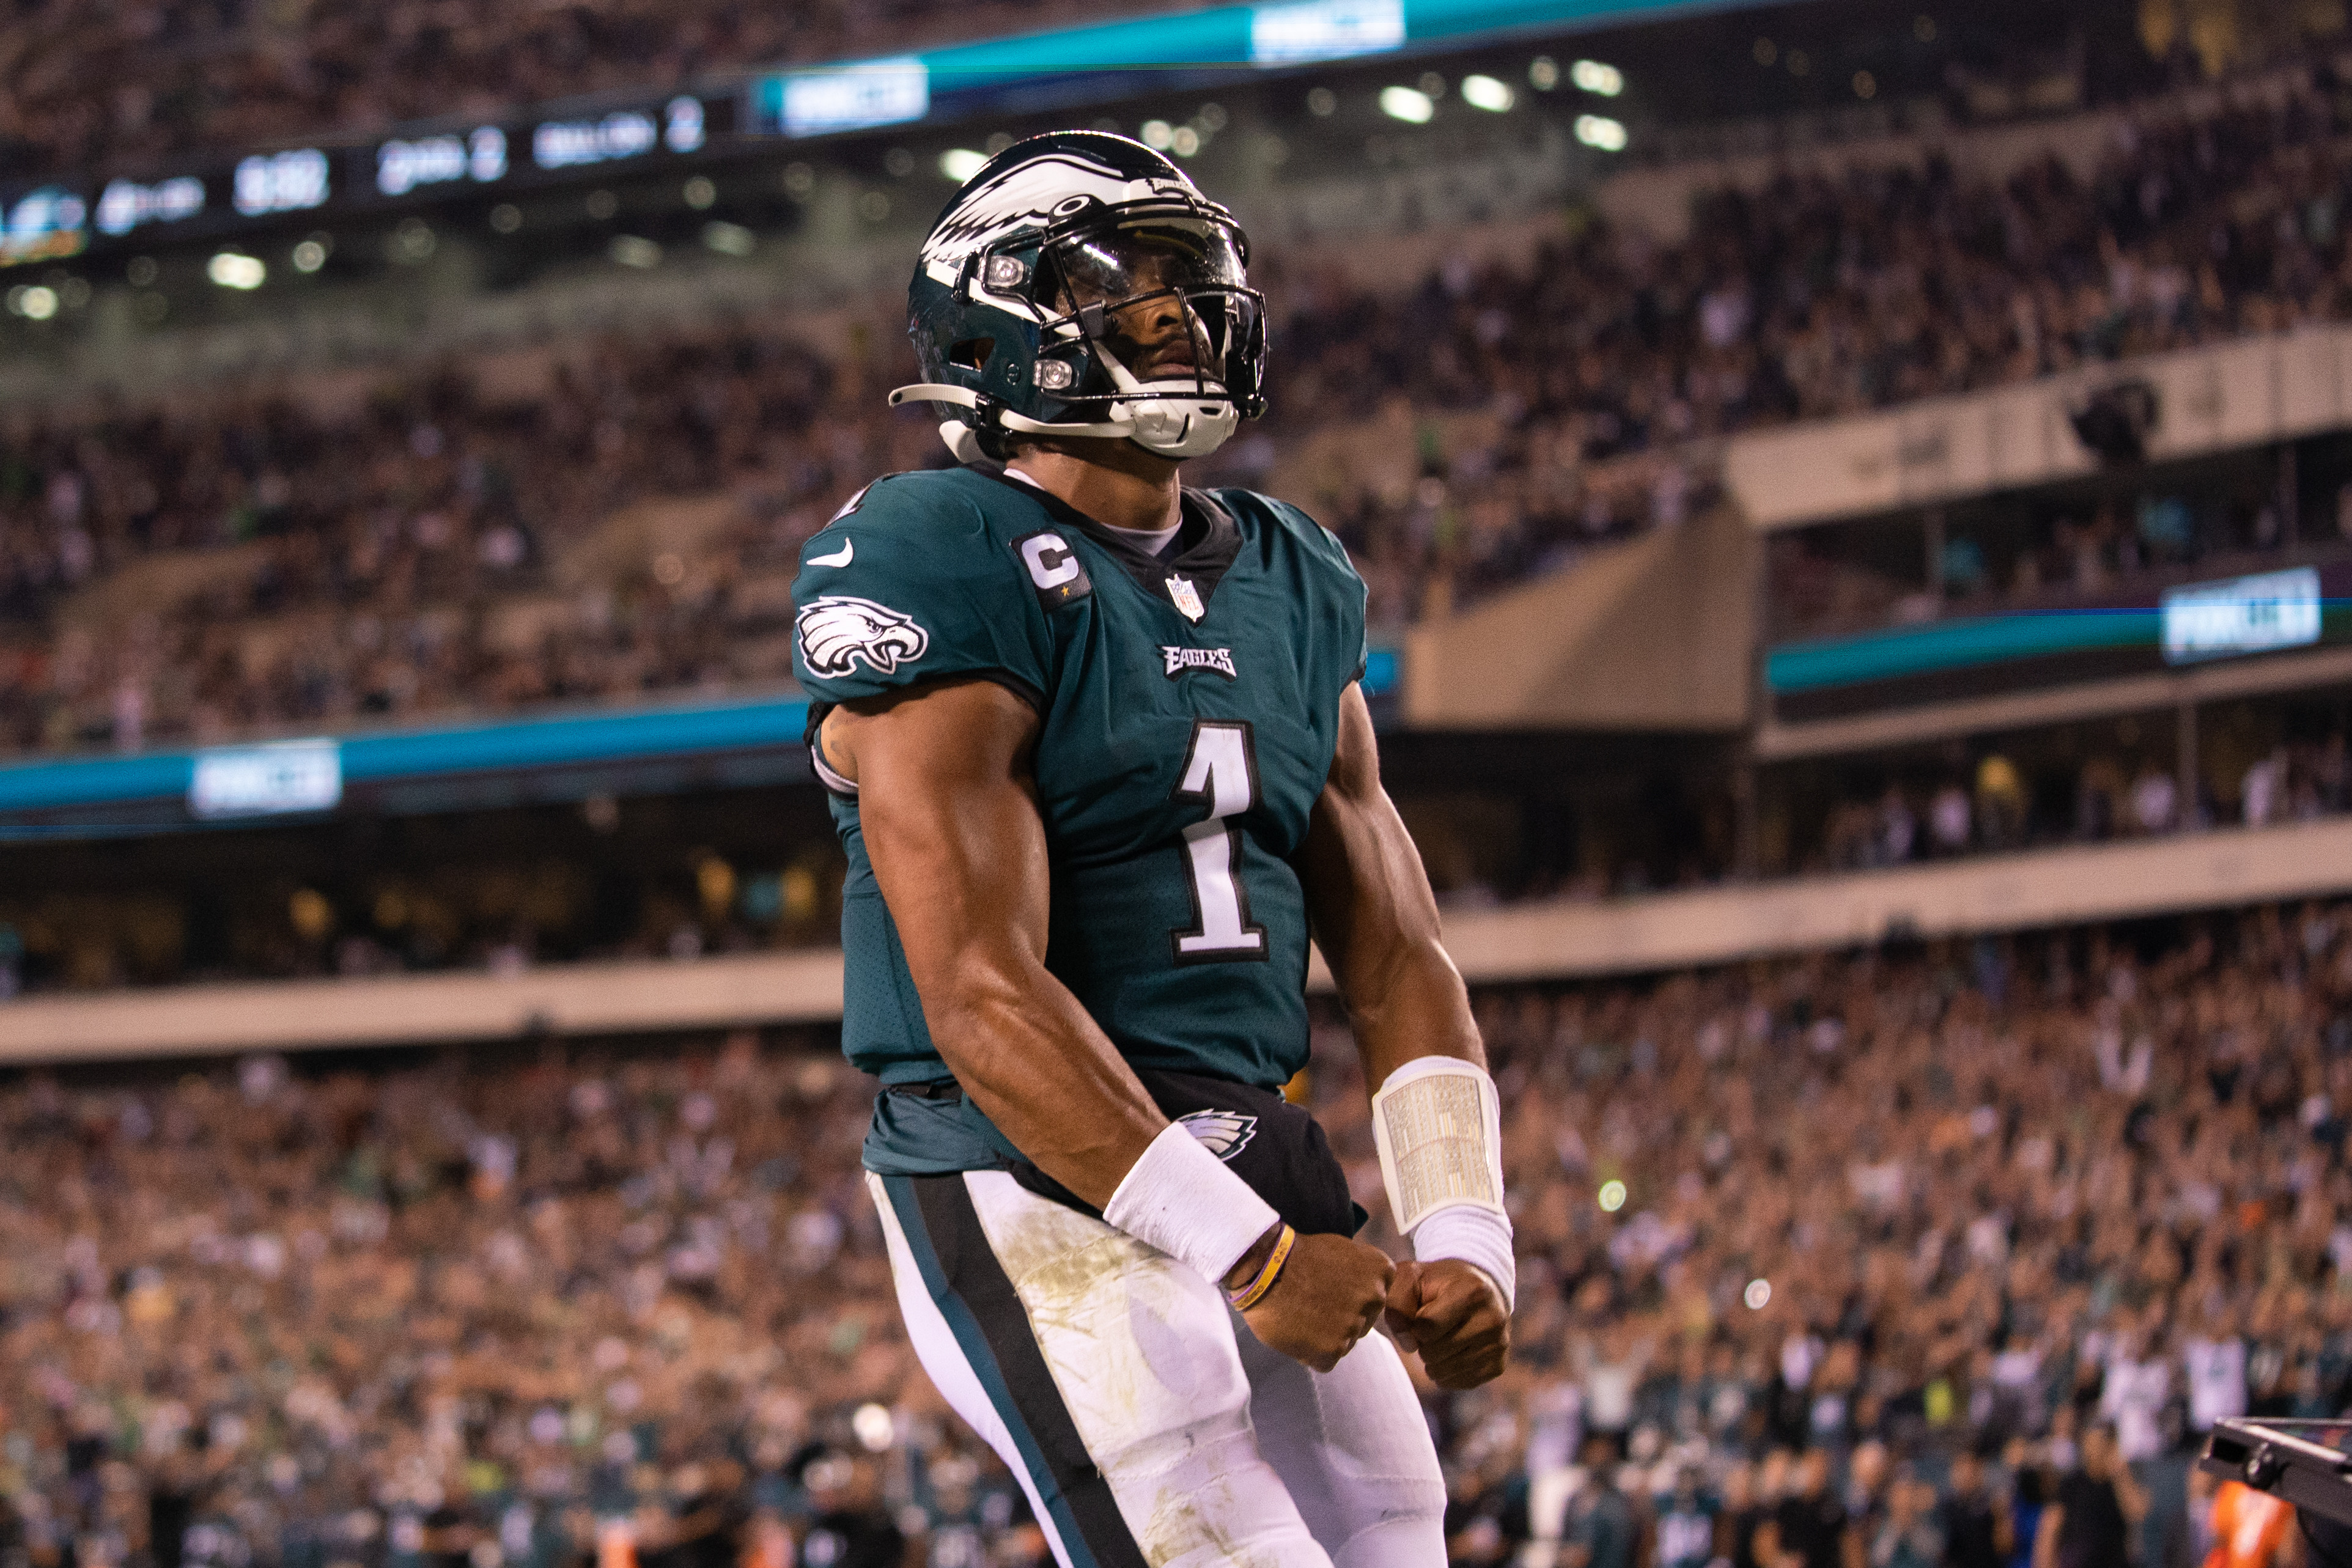 Philadelphia Eagles quarterback Jalen Hurts (1) reacts after his touchdown run against the Tampa Bay Buccaneers during the fourth quarter at Lincoln Financial Field.